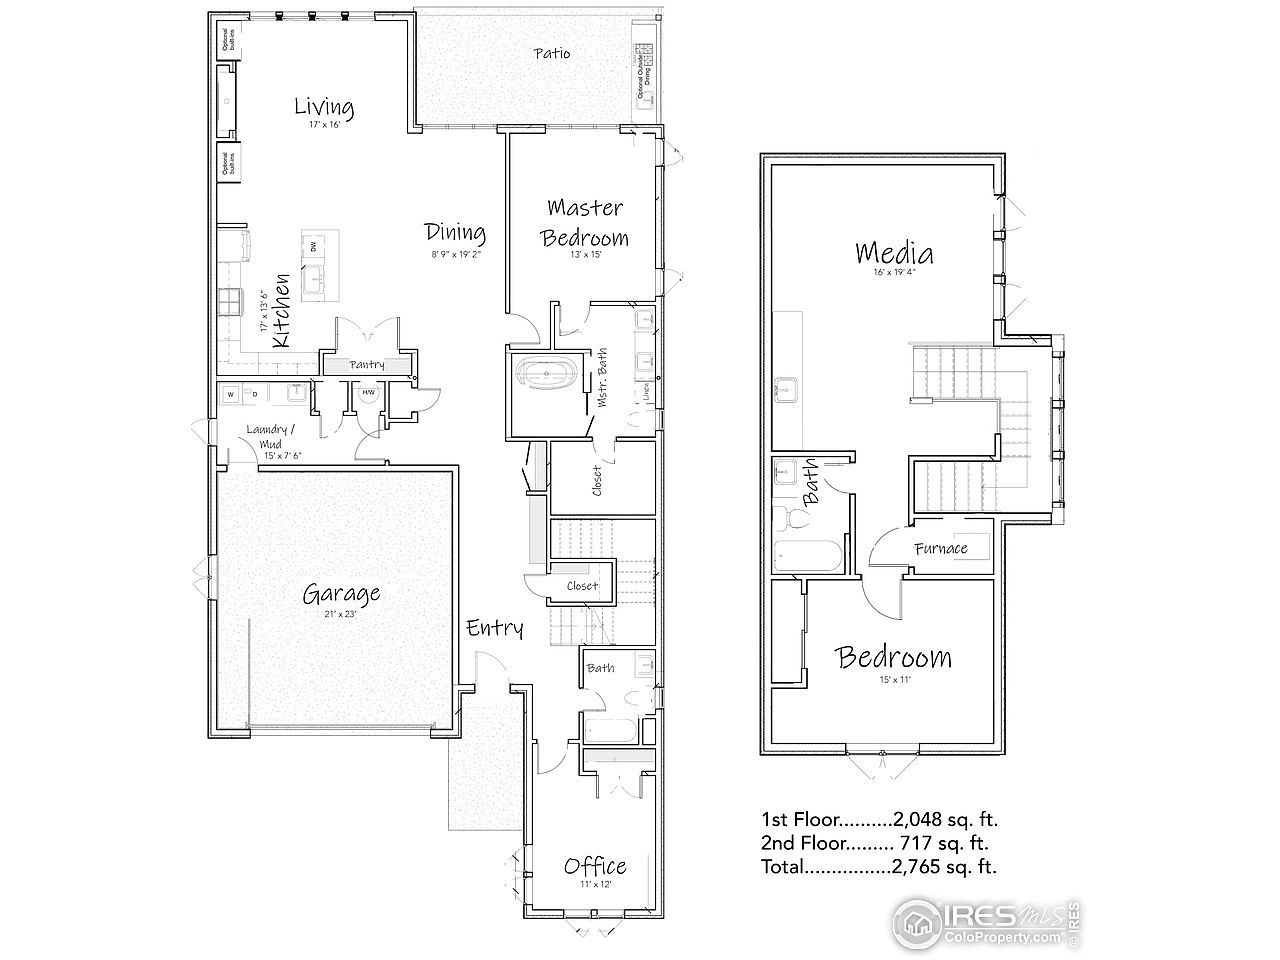 catalina_floor plan.details